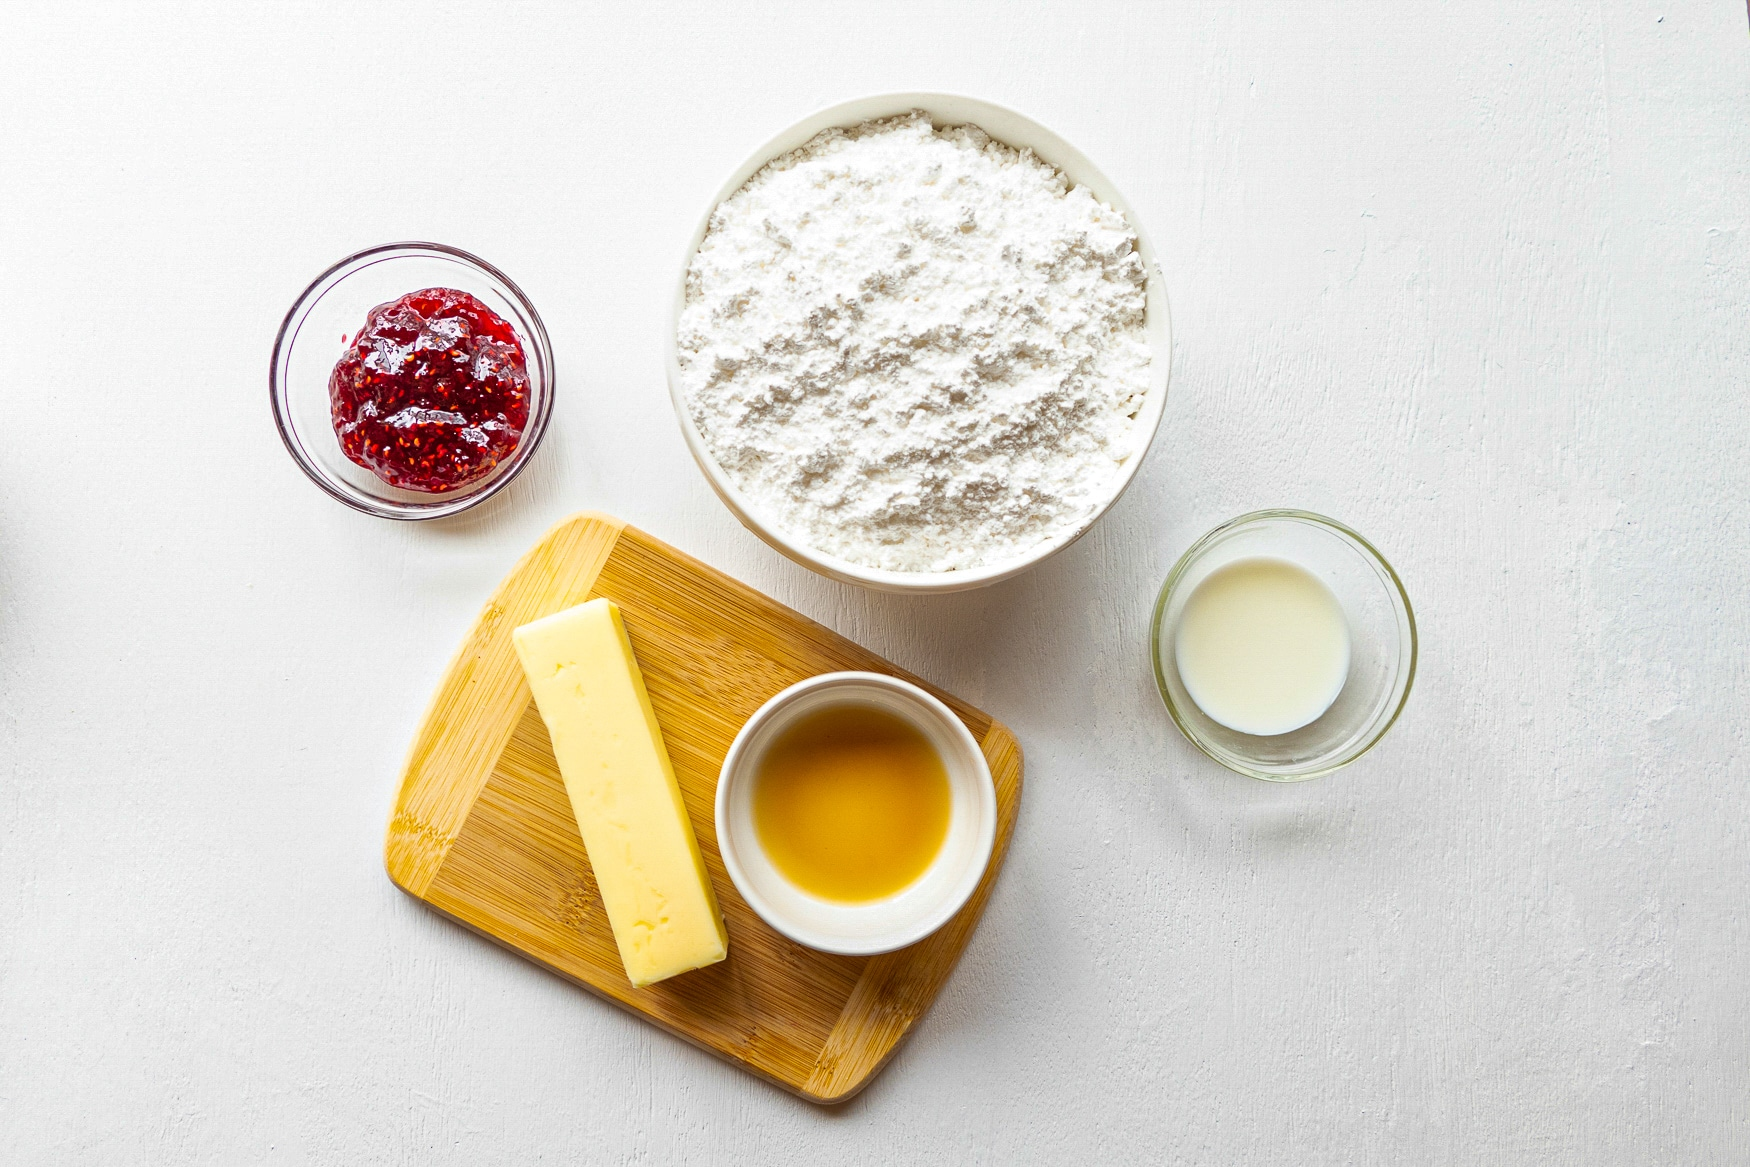 Ingredients needed to make buttercream frosting displayed on a white background.